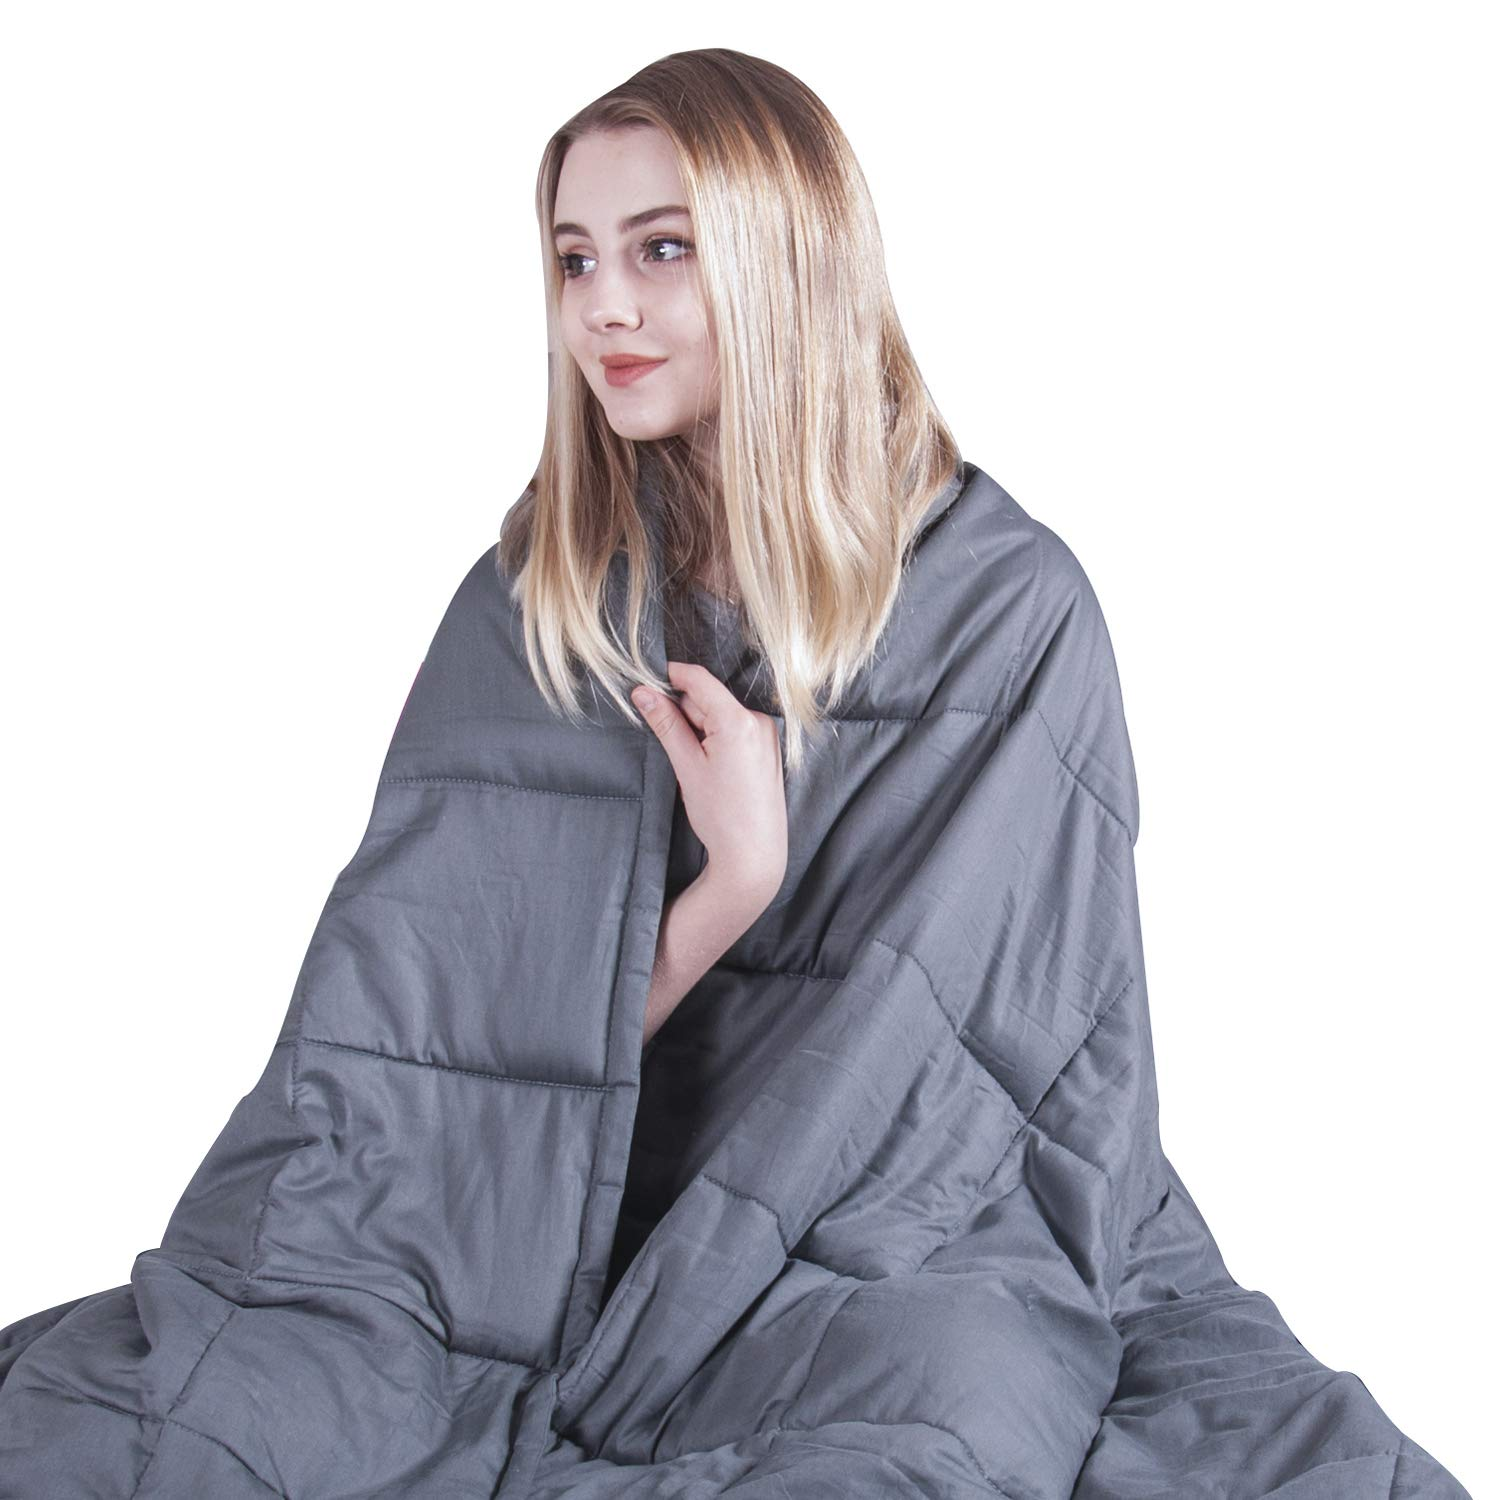 COMHO Weighted Blanket for Adults Cooling Cotton(20 lbs,60''x80'',Queen Size)